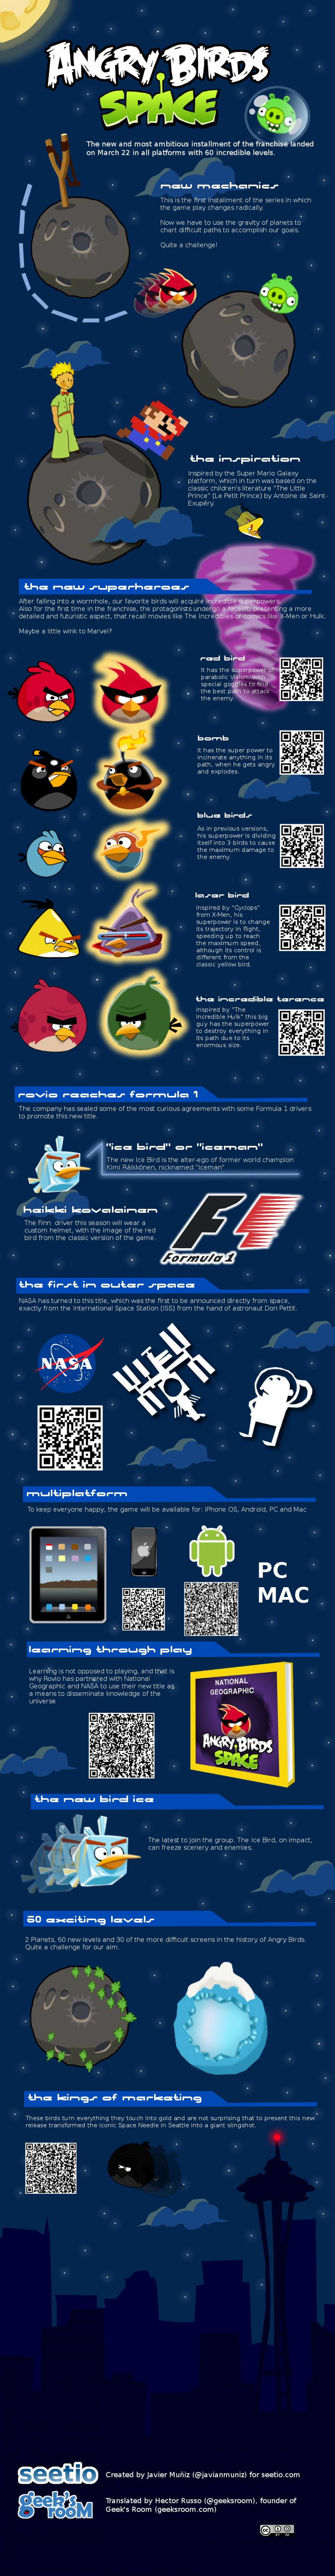 Angry Birds Space Infographic